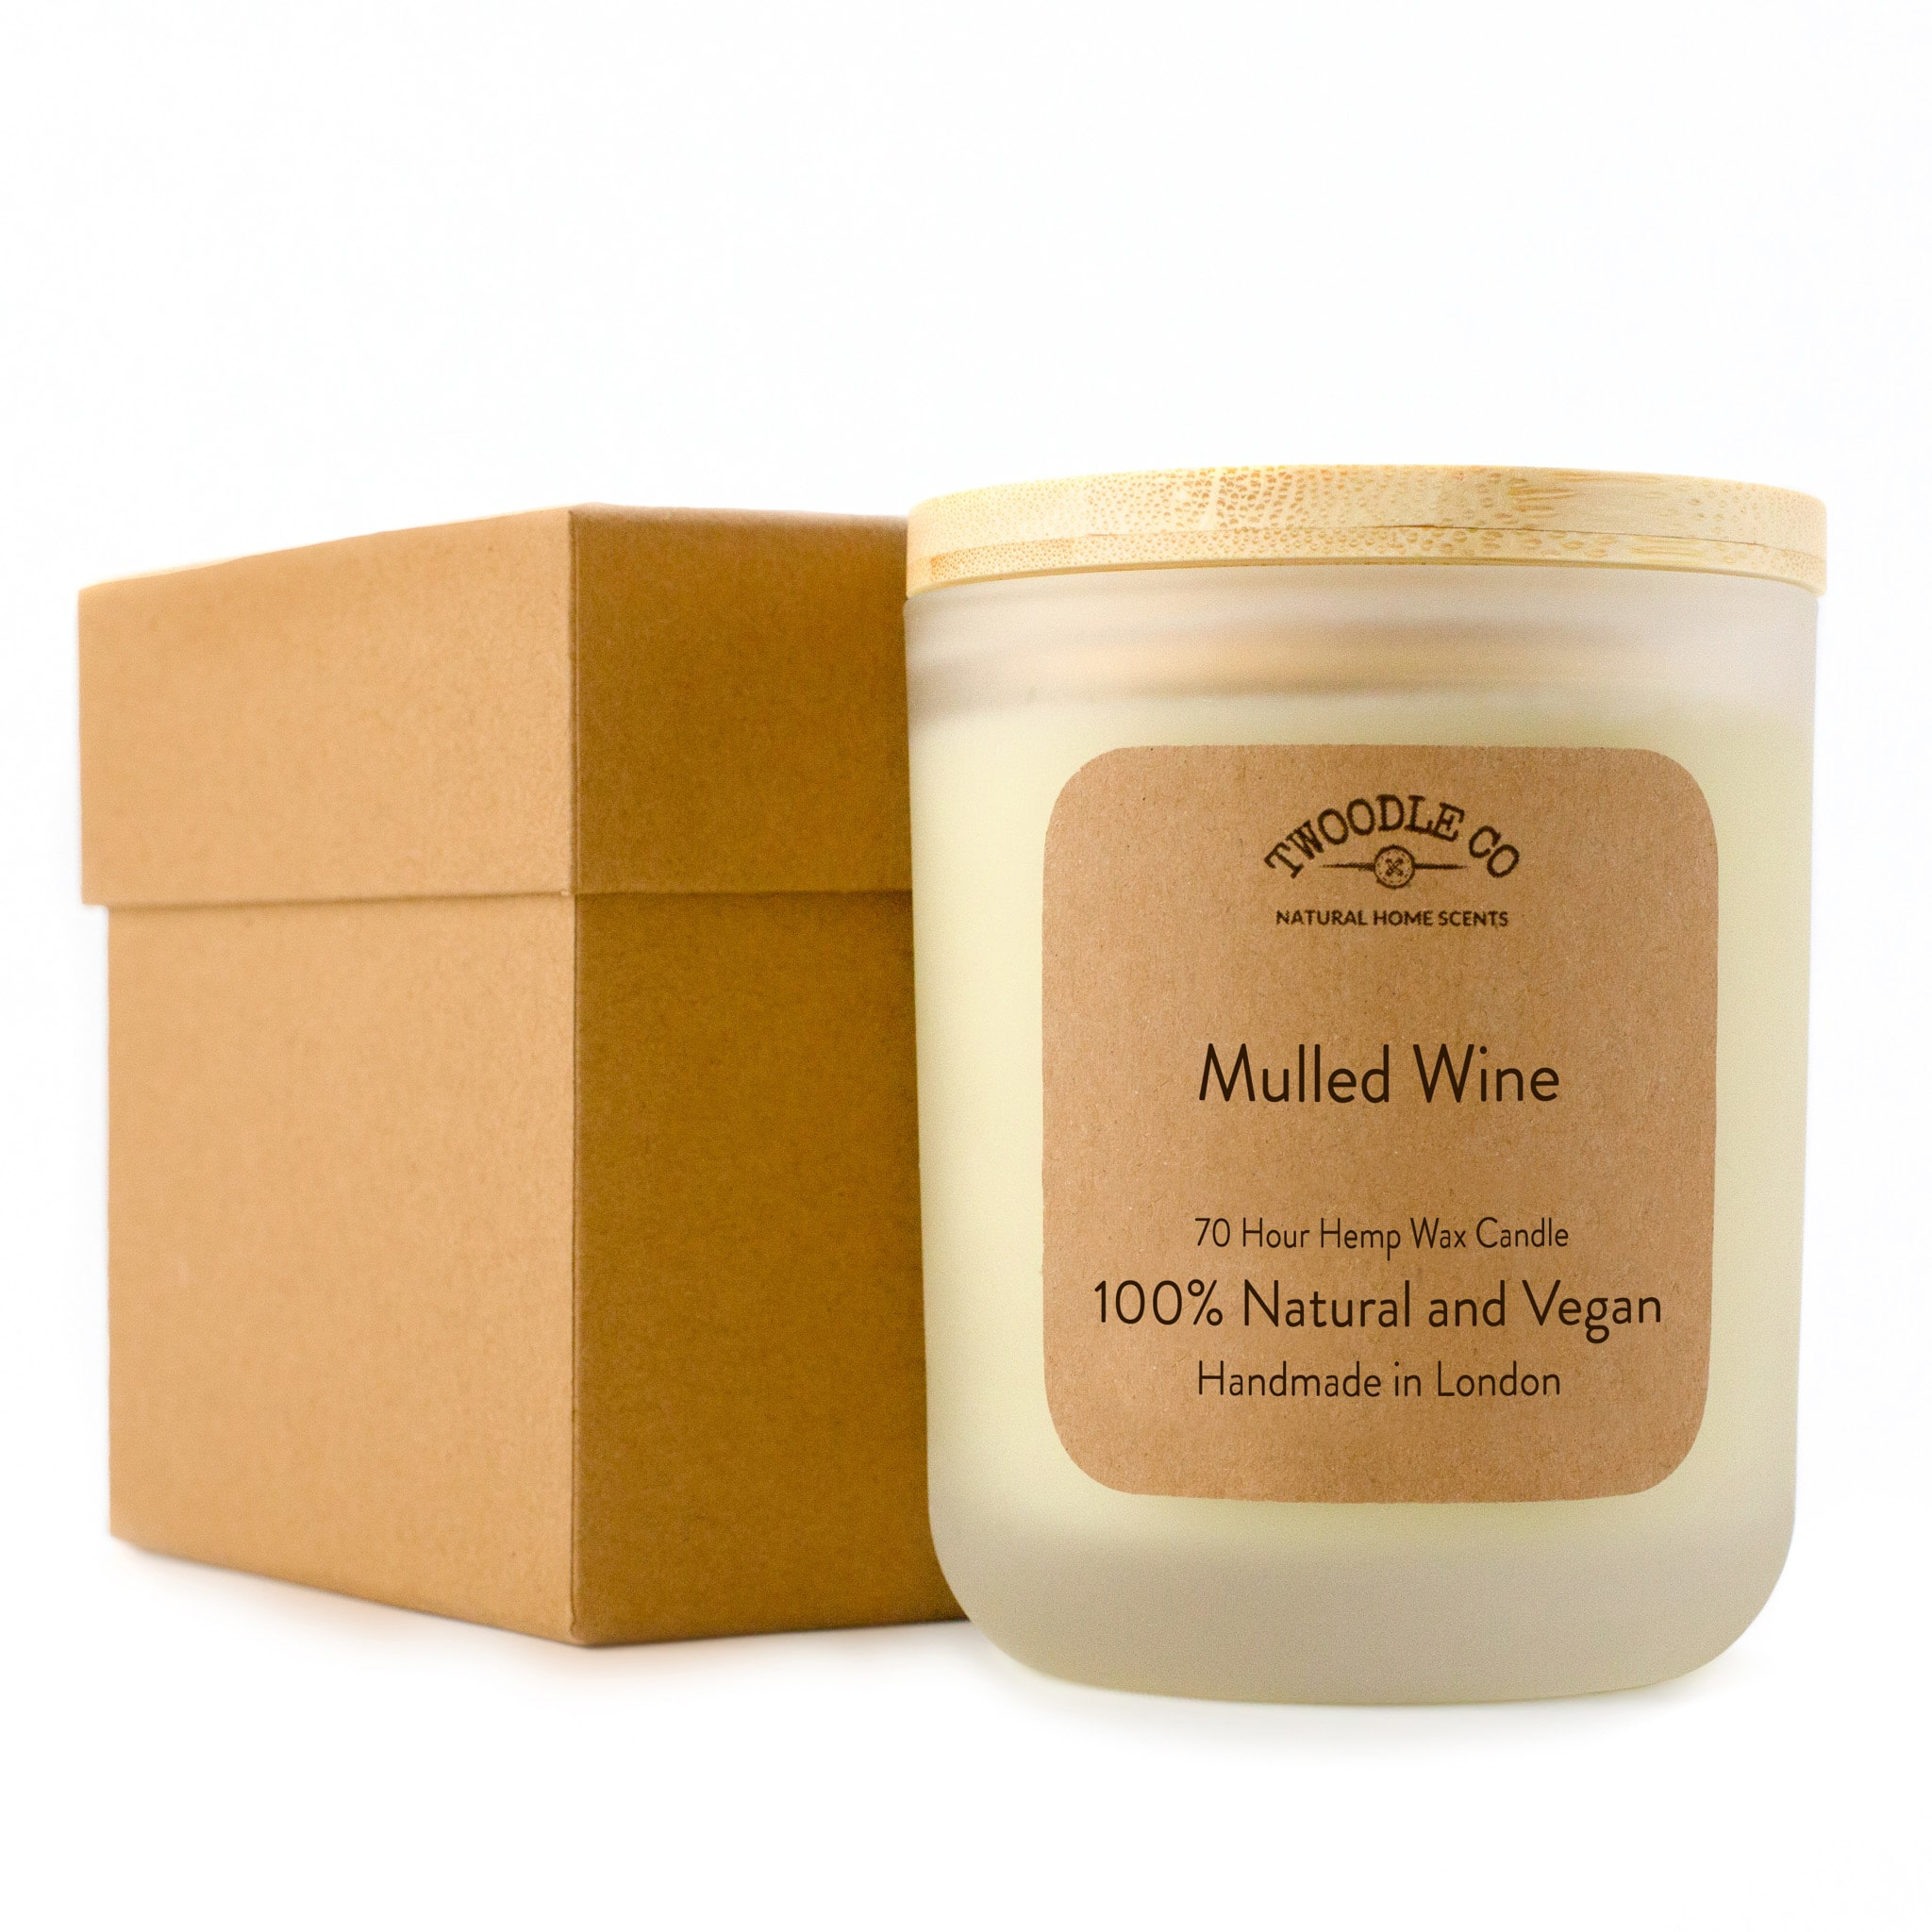 Twoodle Co Large Scented Candle Mulled Wine